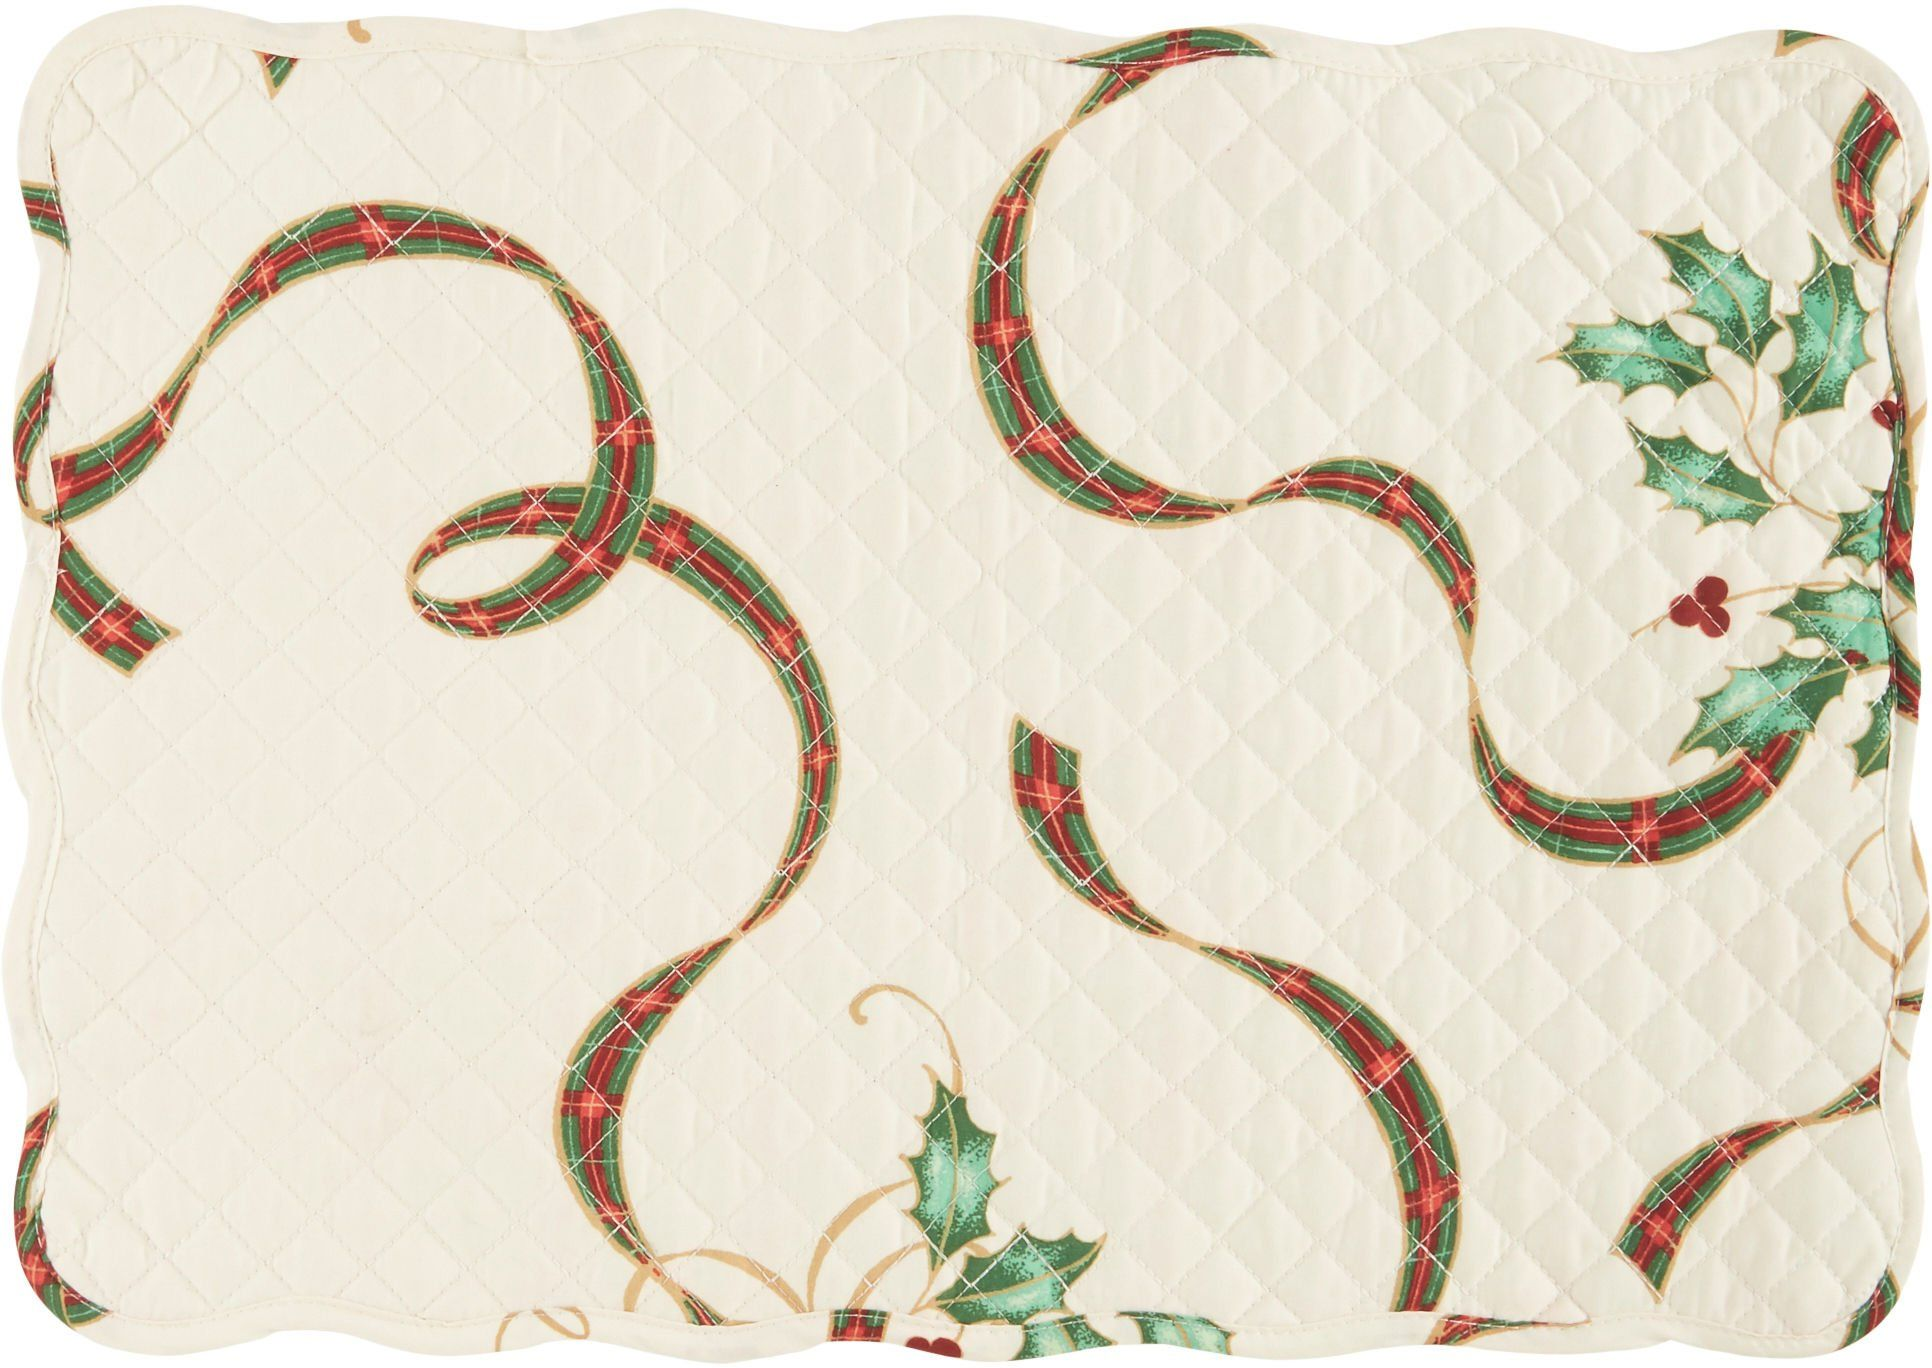 Lenox Holiday Nouveau Quilted Placemat One Size Awesome Products Selected By Anna Churchill Placemats Dining Table In Kitchen Lenox